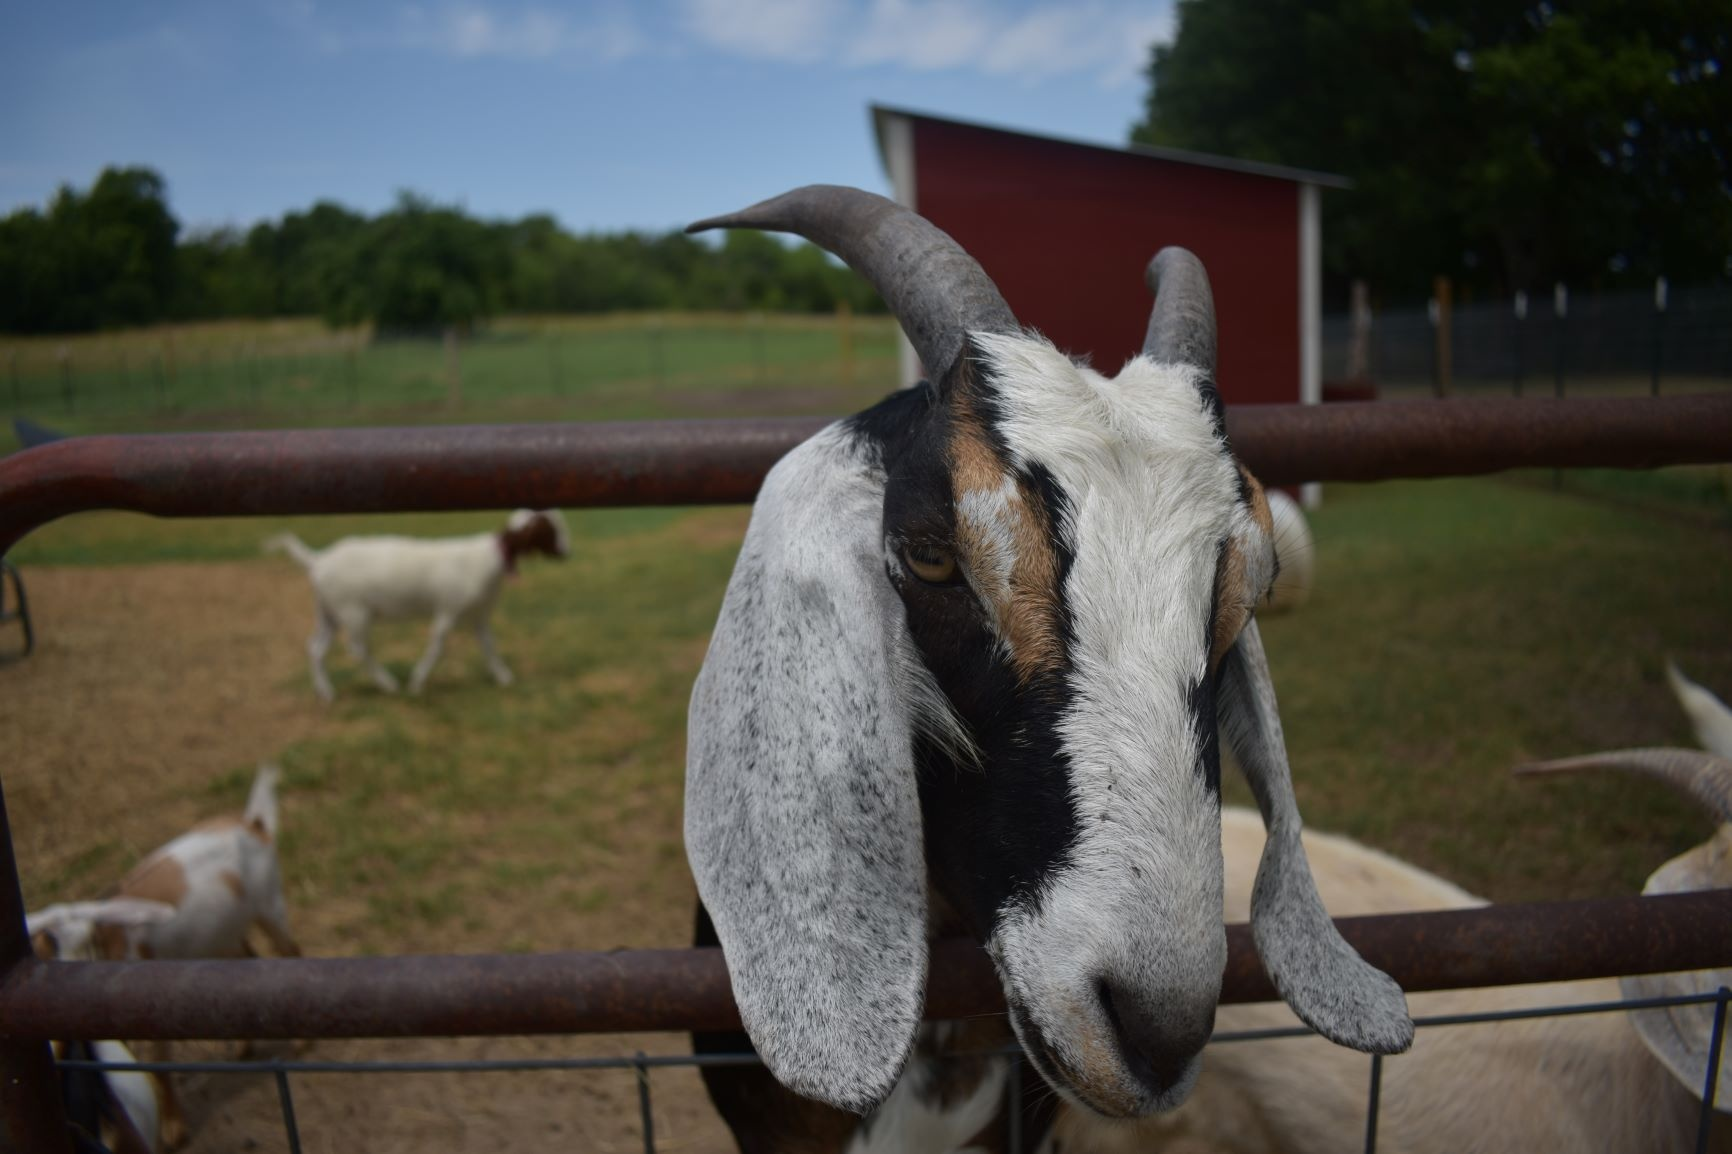 Male goats peeing on their heads can